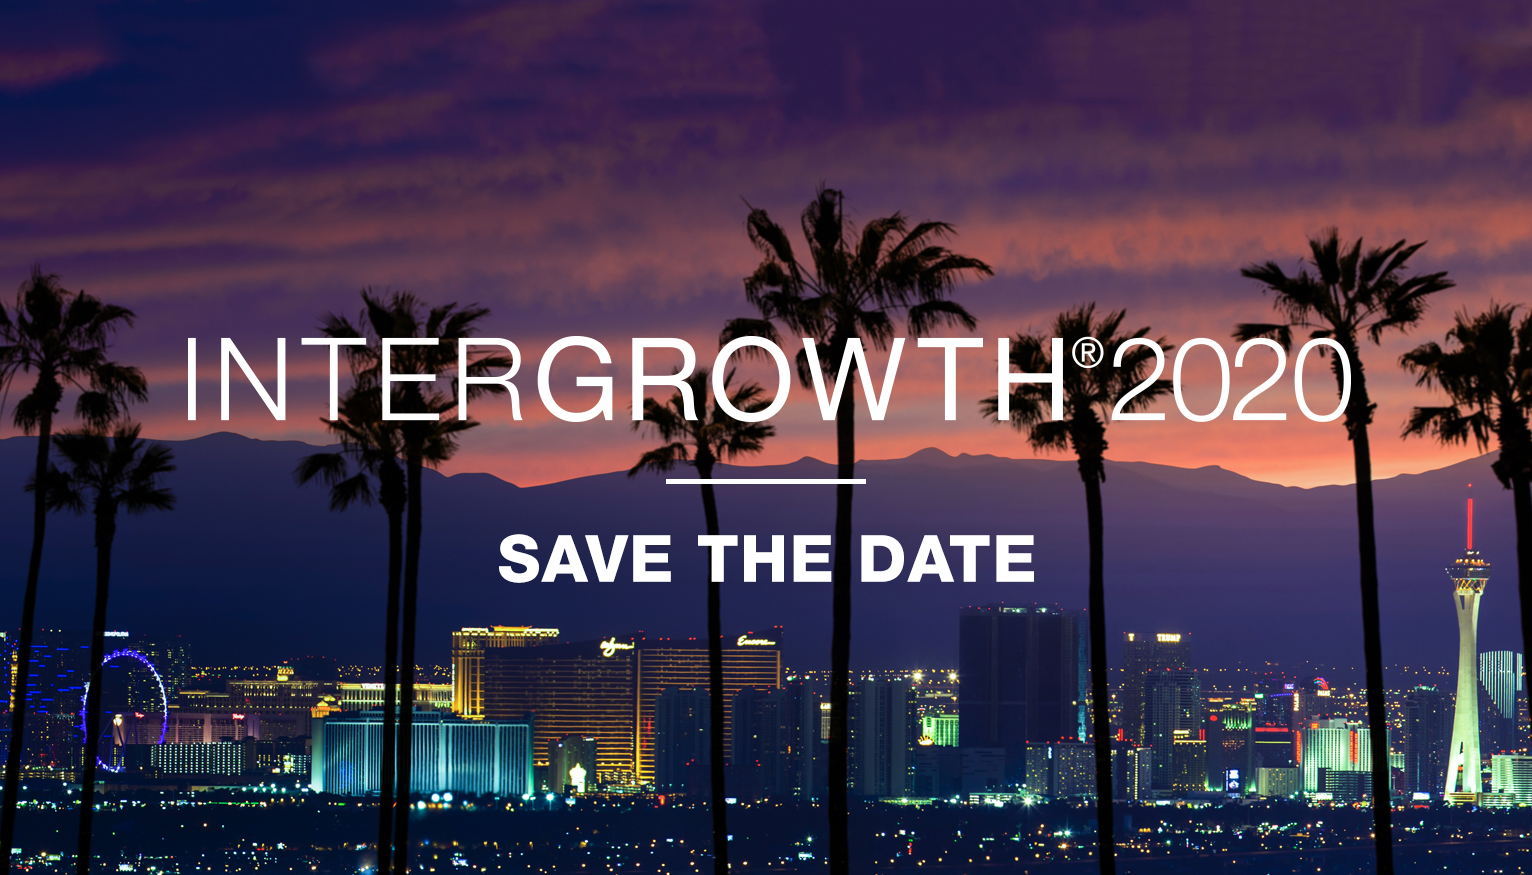 InterGrowth 2020 | Save the Date